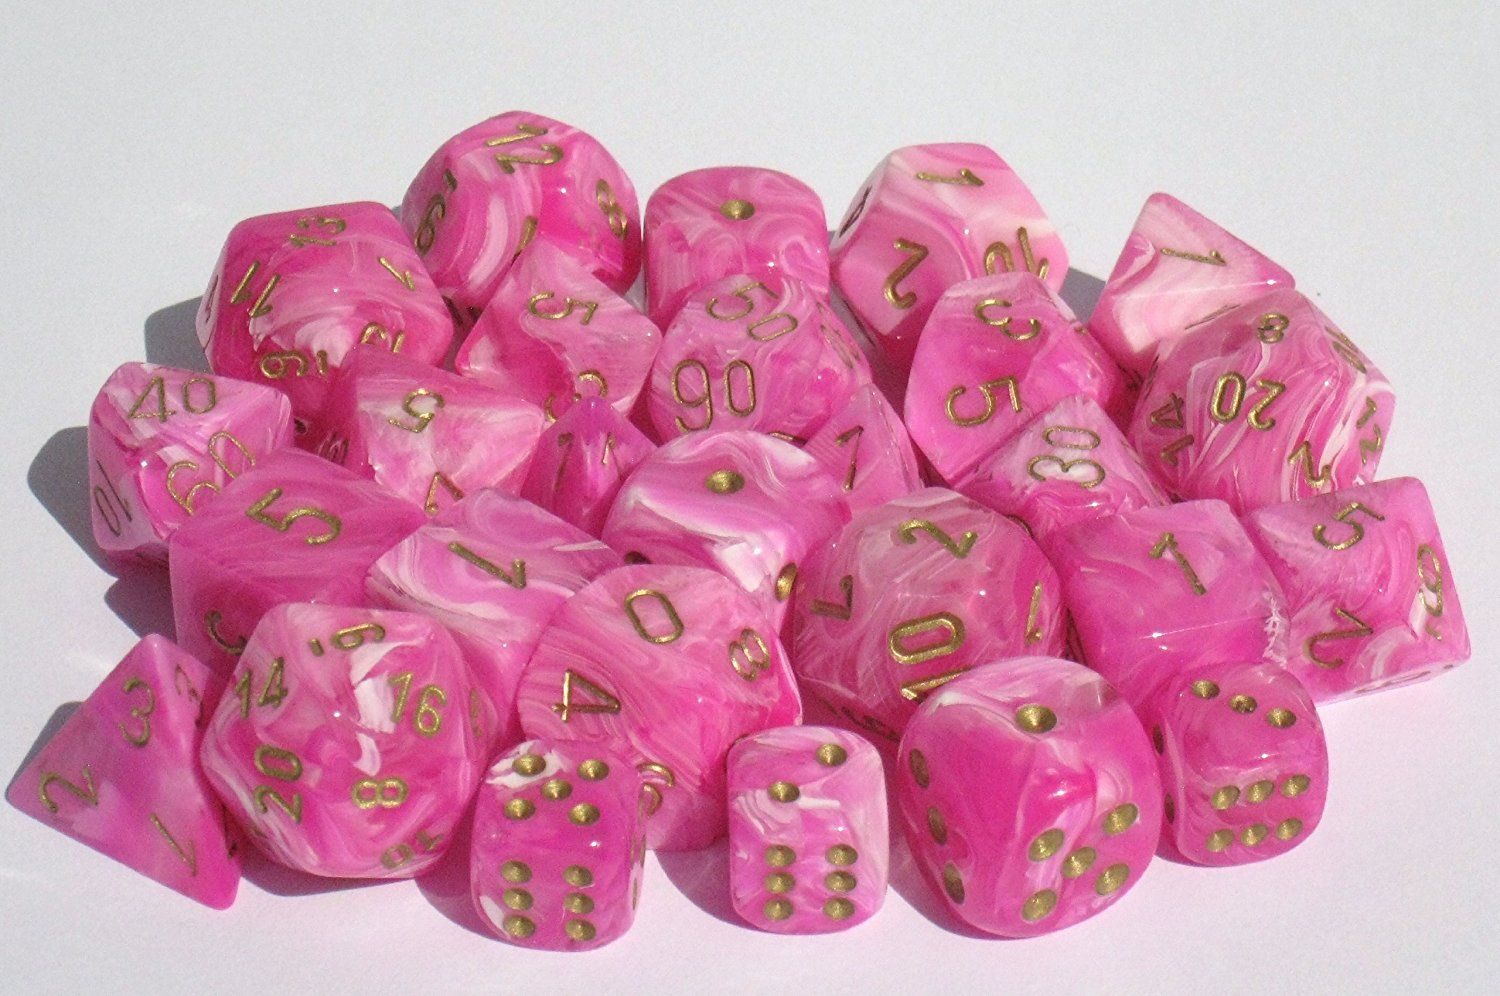 Marbelized pink dice w/ gold numerals